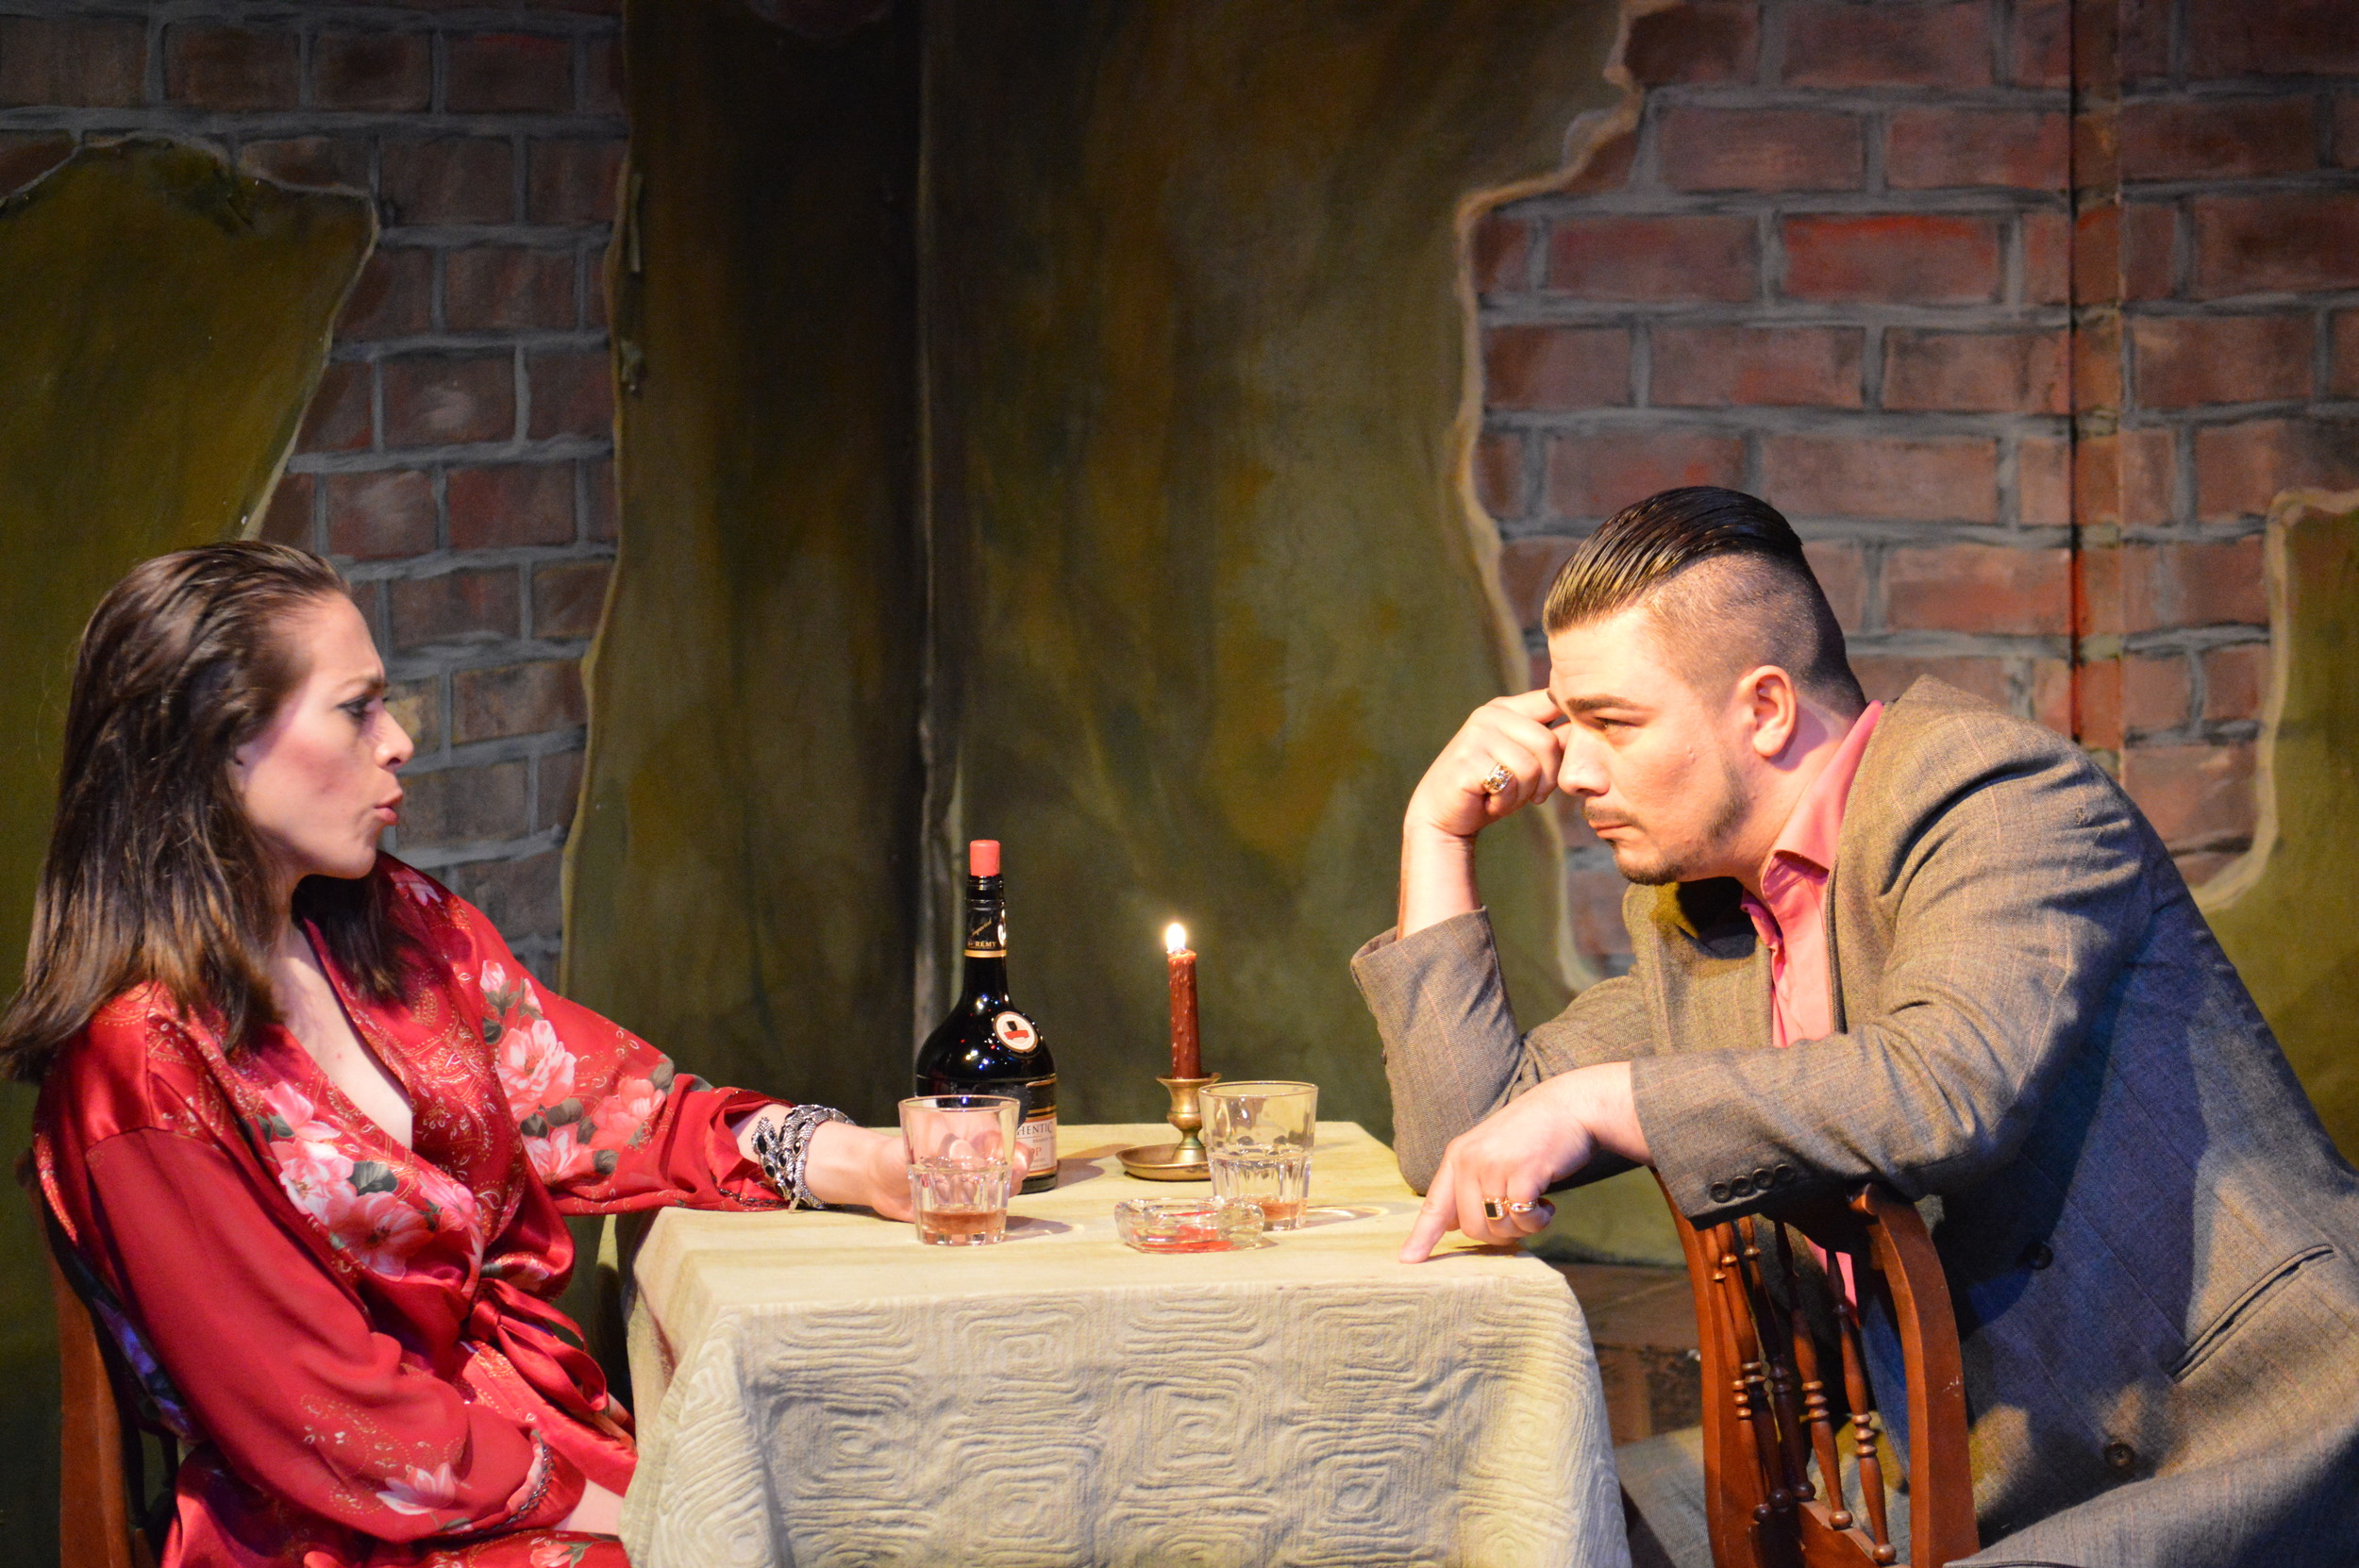 As Lizzie MacKay in Aguijón Theater's  The Respectful Prostitute.  With Sándor Menéndez. Dir. Sándor Menéndez. Spring 2014.